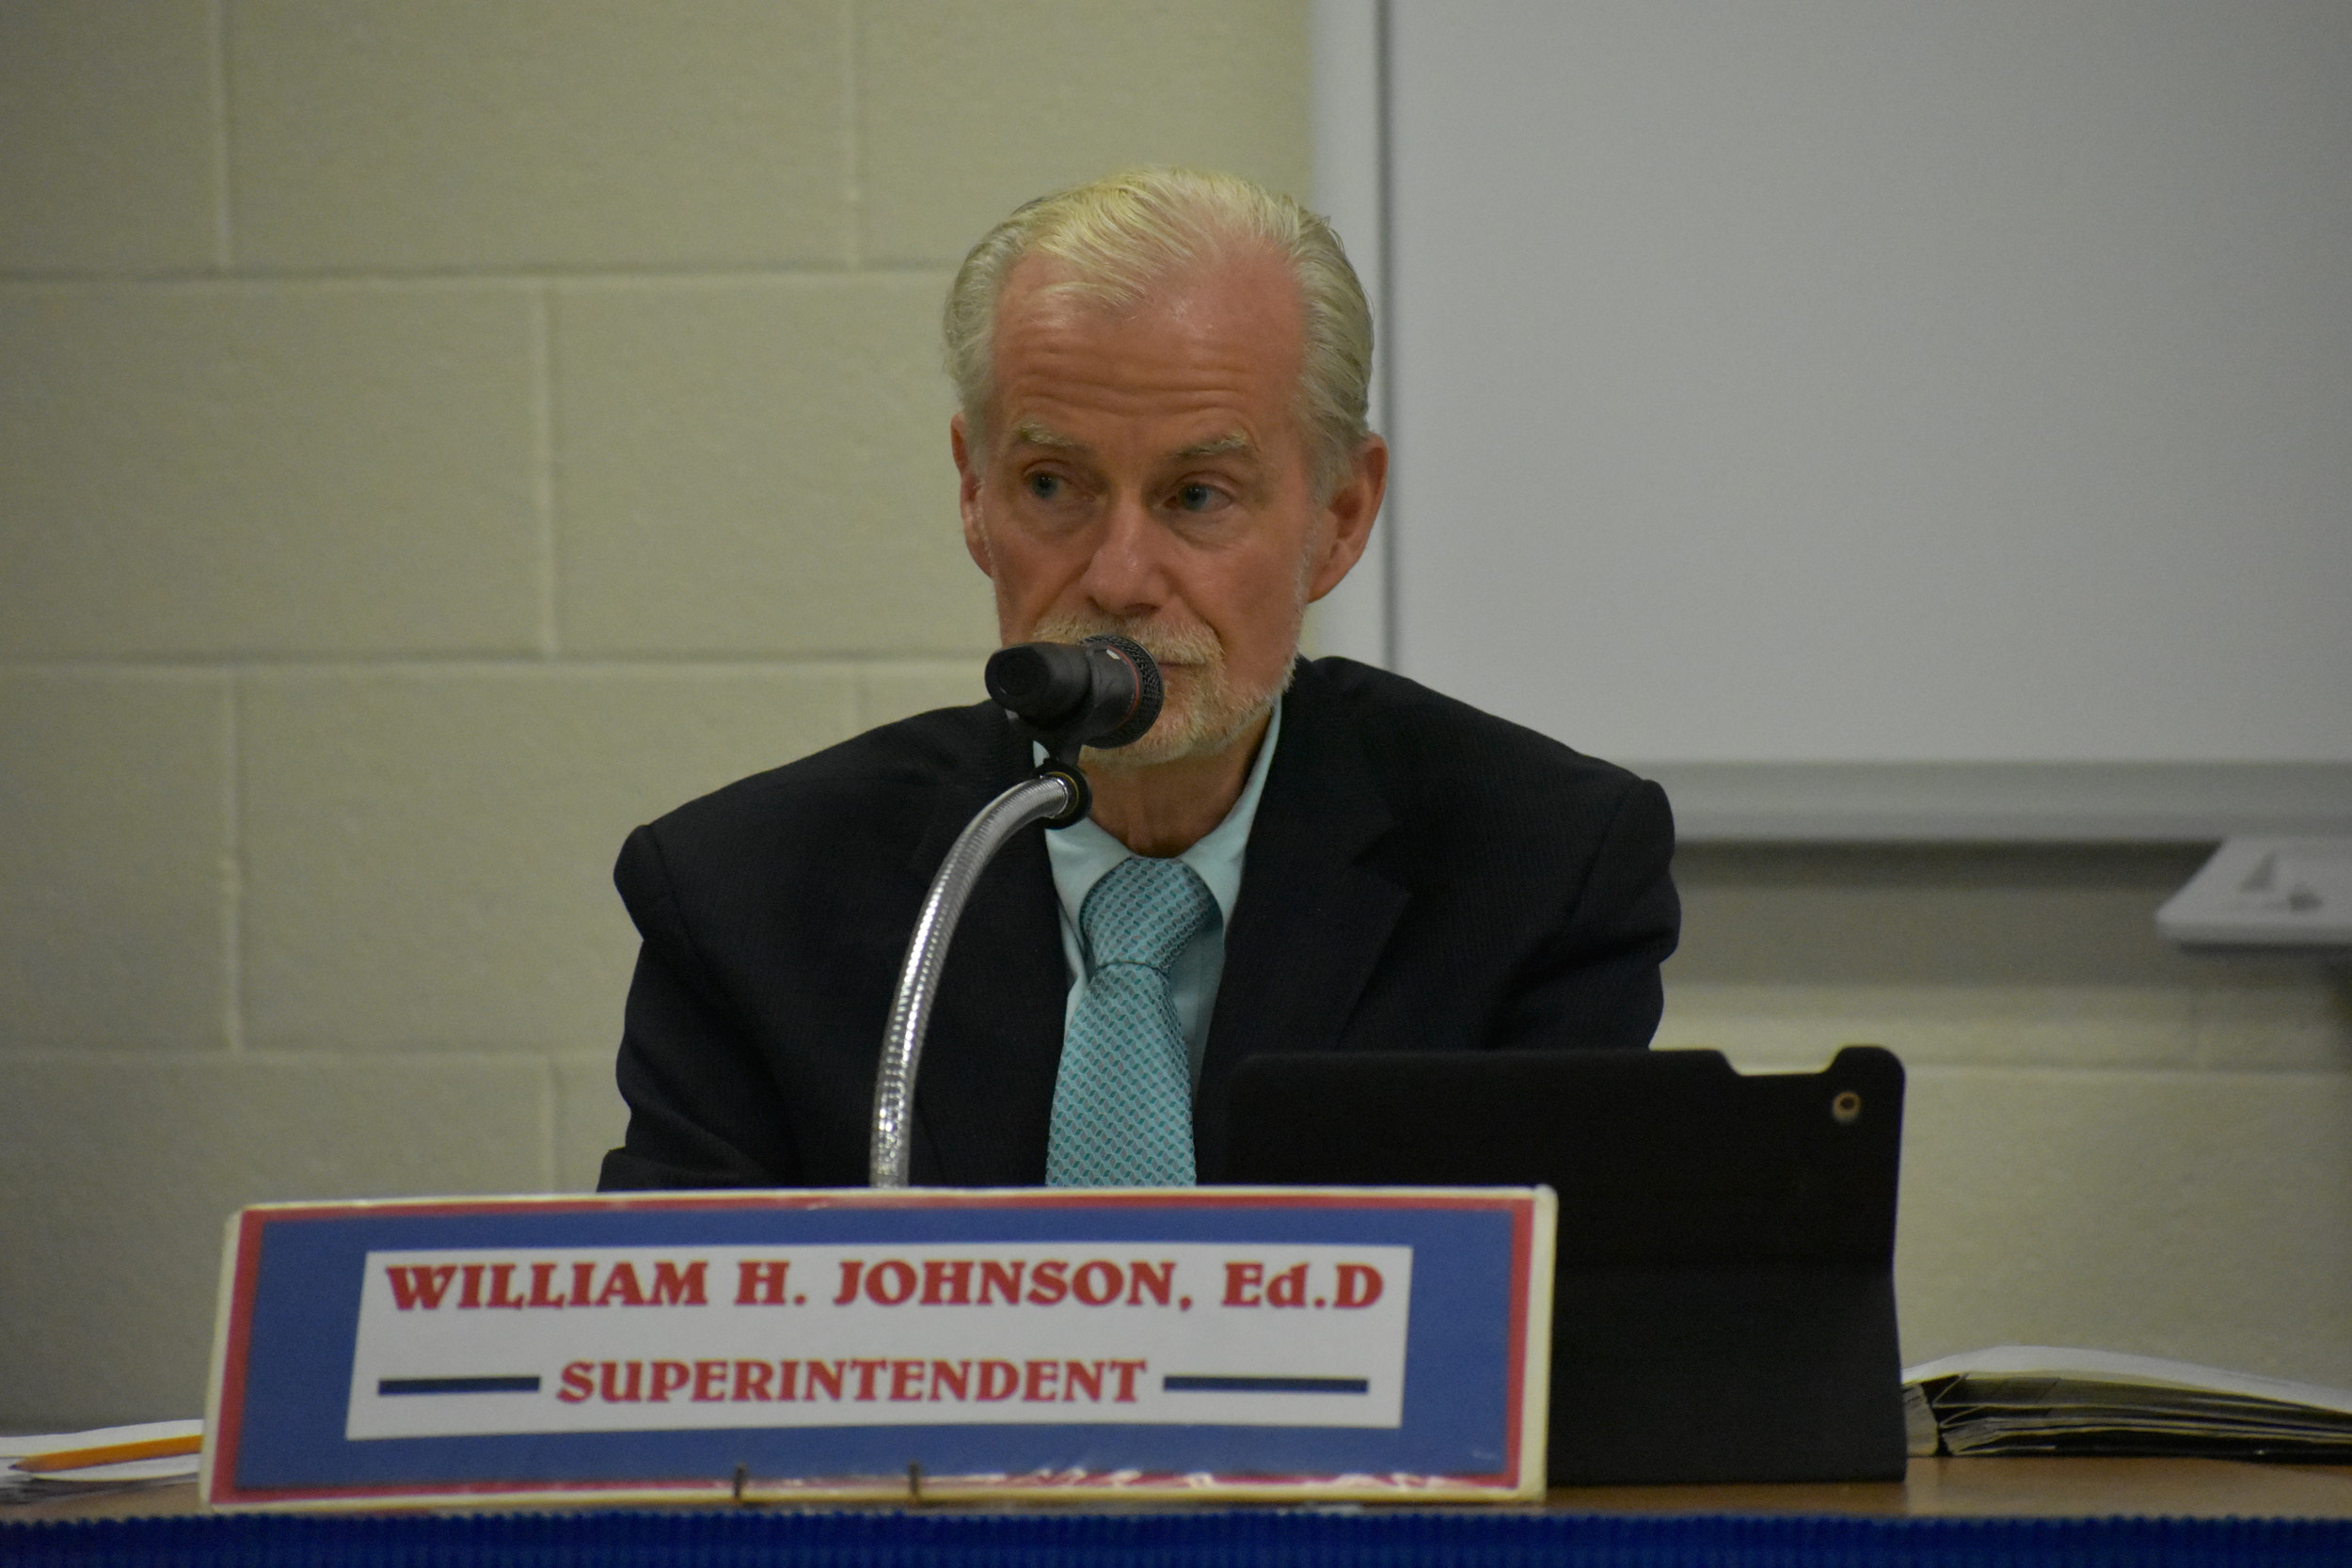 Rockville Centre Schools Superintendent Dr. William Johnson thanked the Board of Education for agreeing to extend his contract through 2020 at a meeting on Sept. 6.